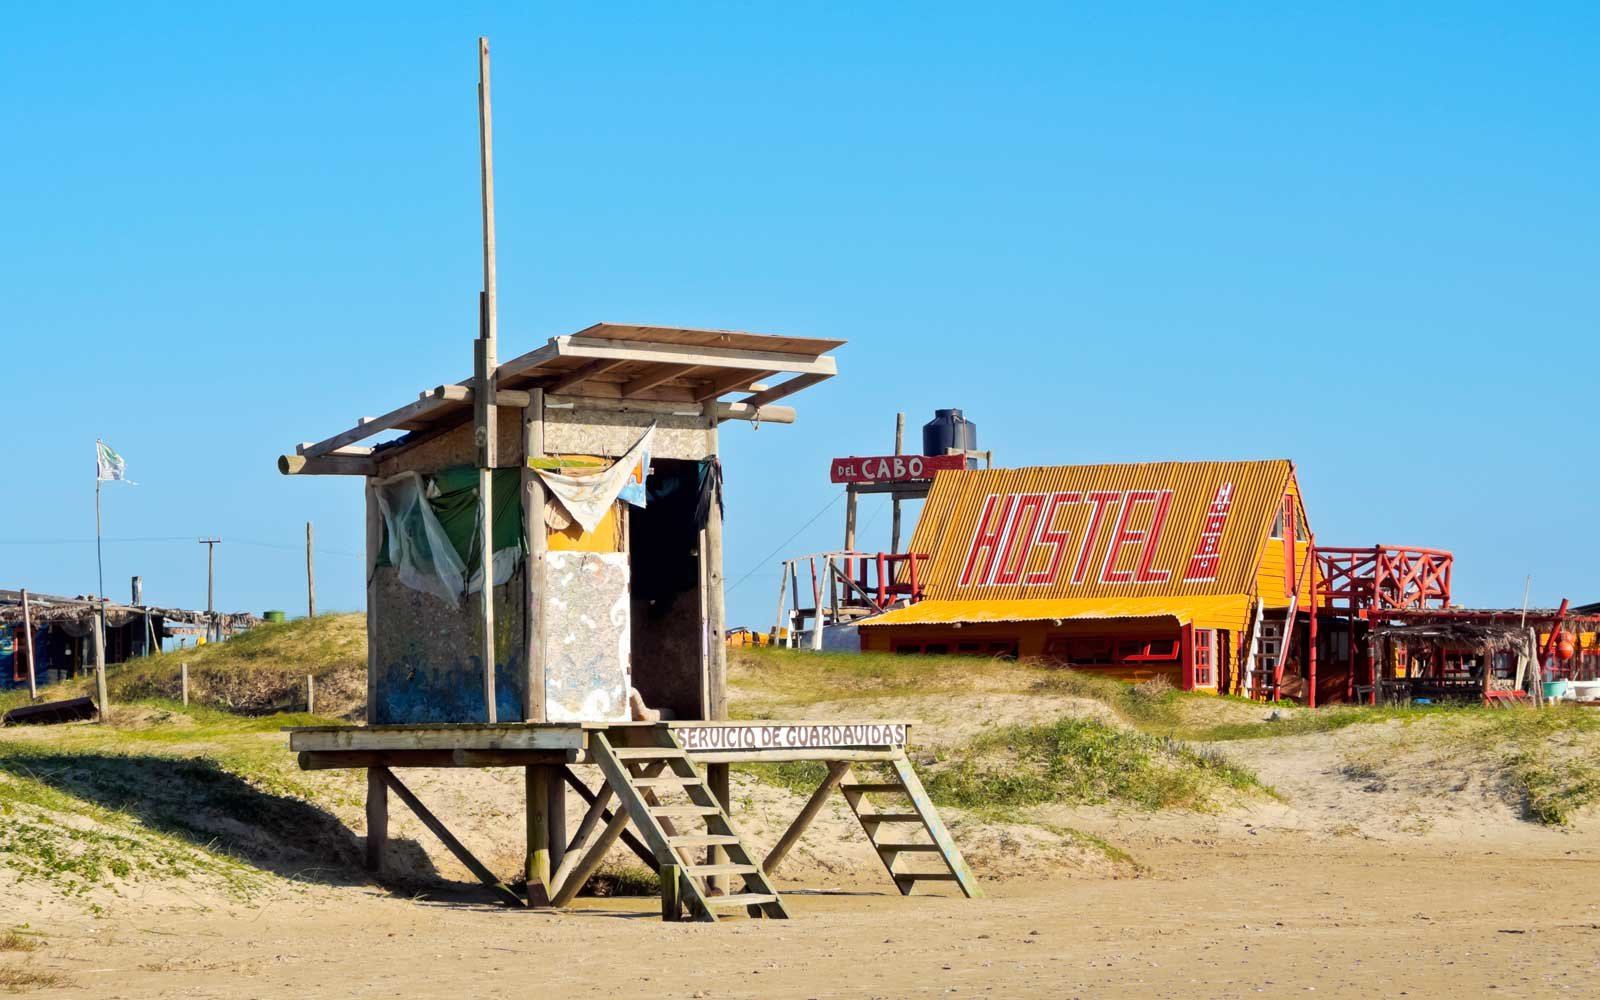 Lifeguard tower in Cabo Polonia, Uruguay